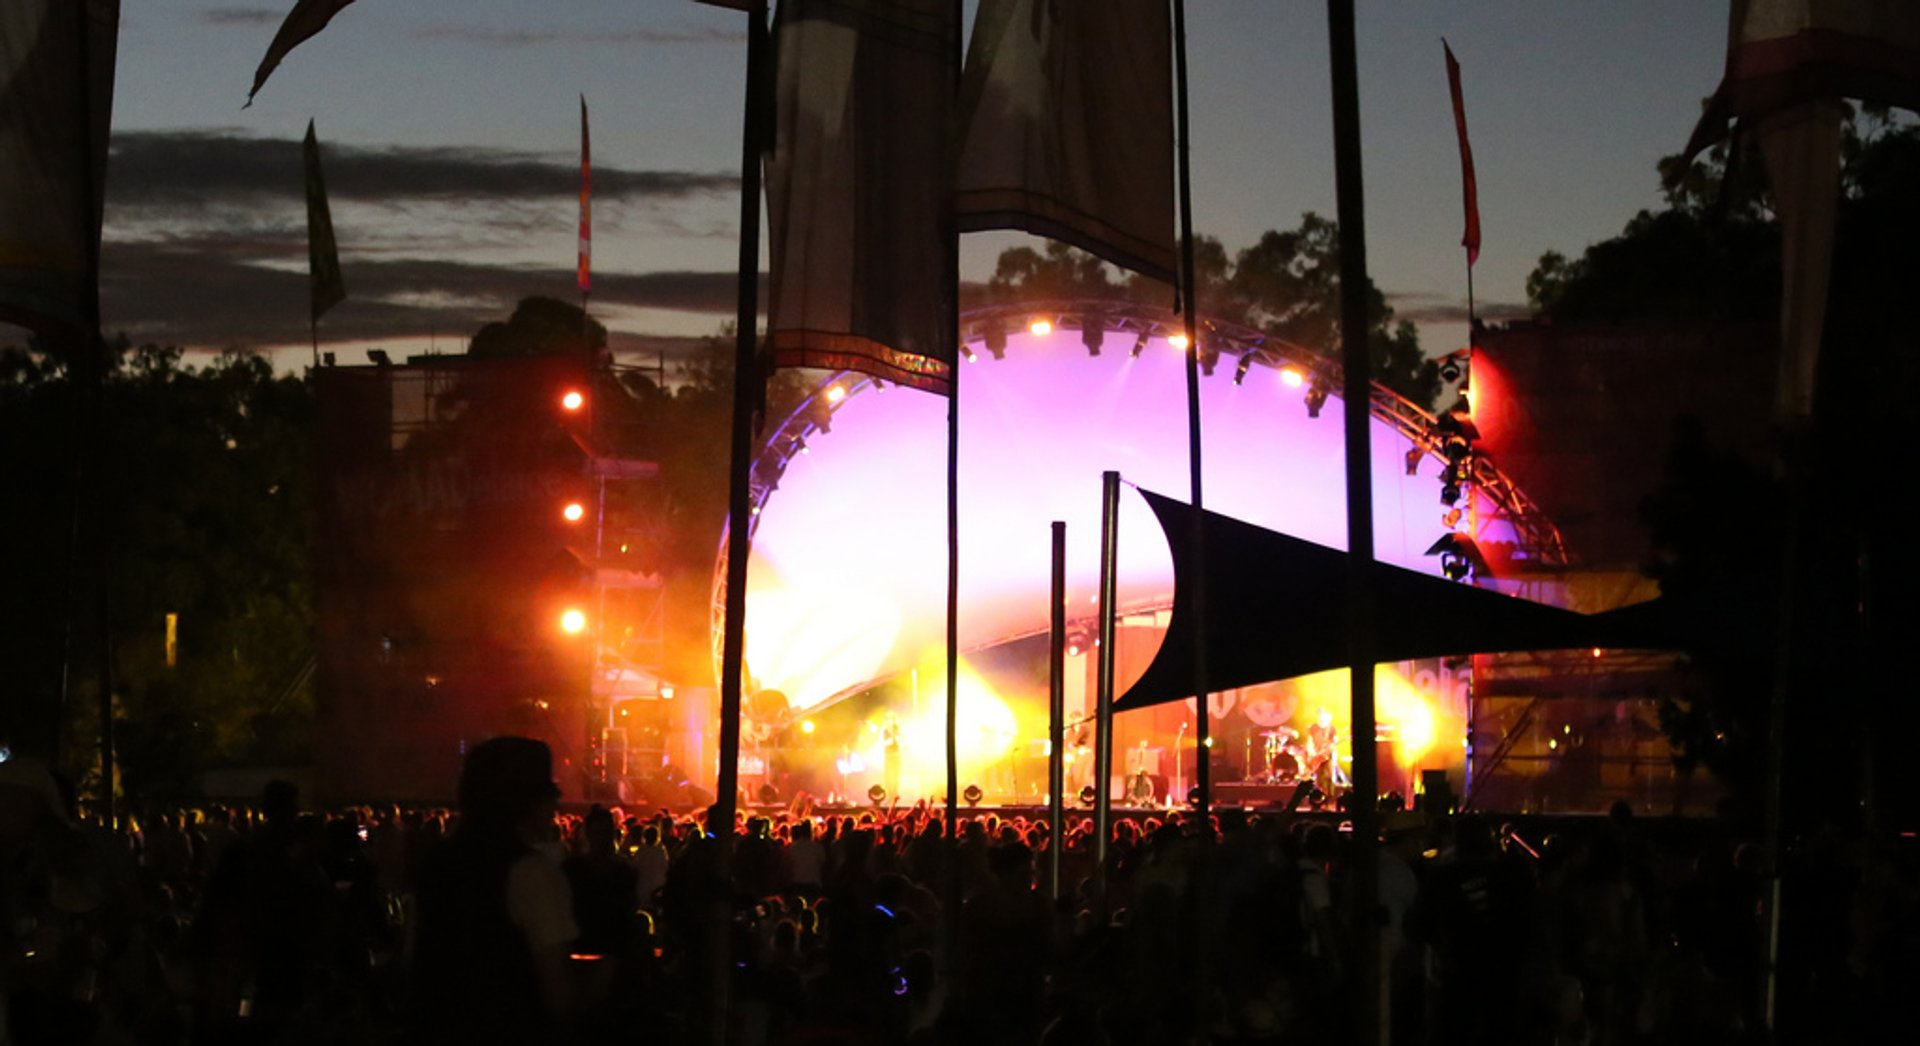 WOMADelaide Festival in South Australia 2019 - Best Time